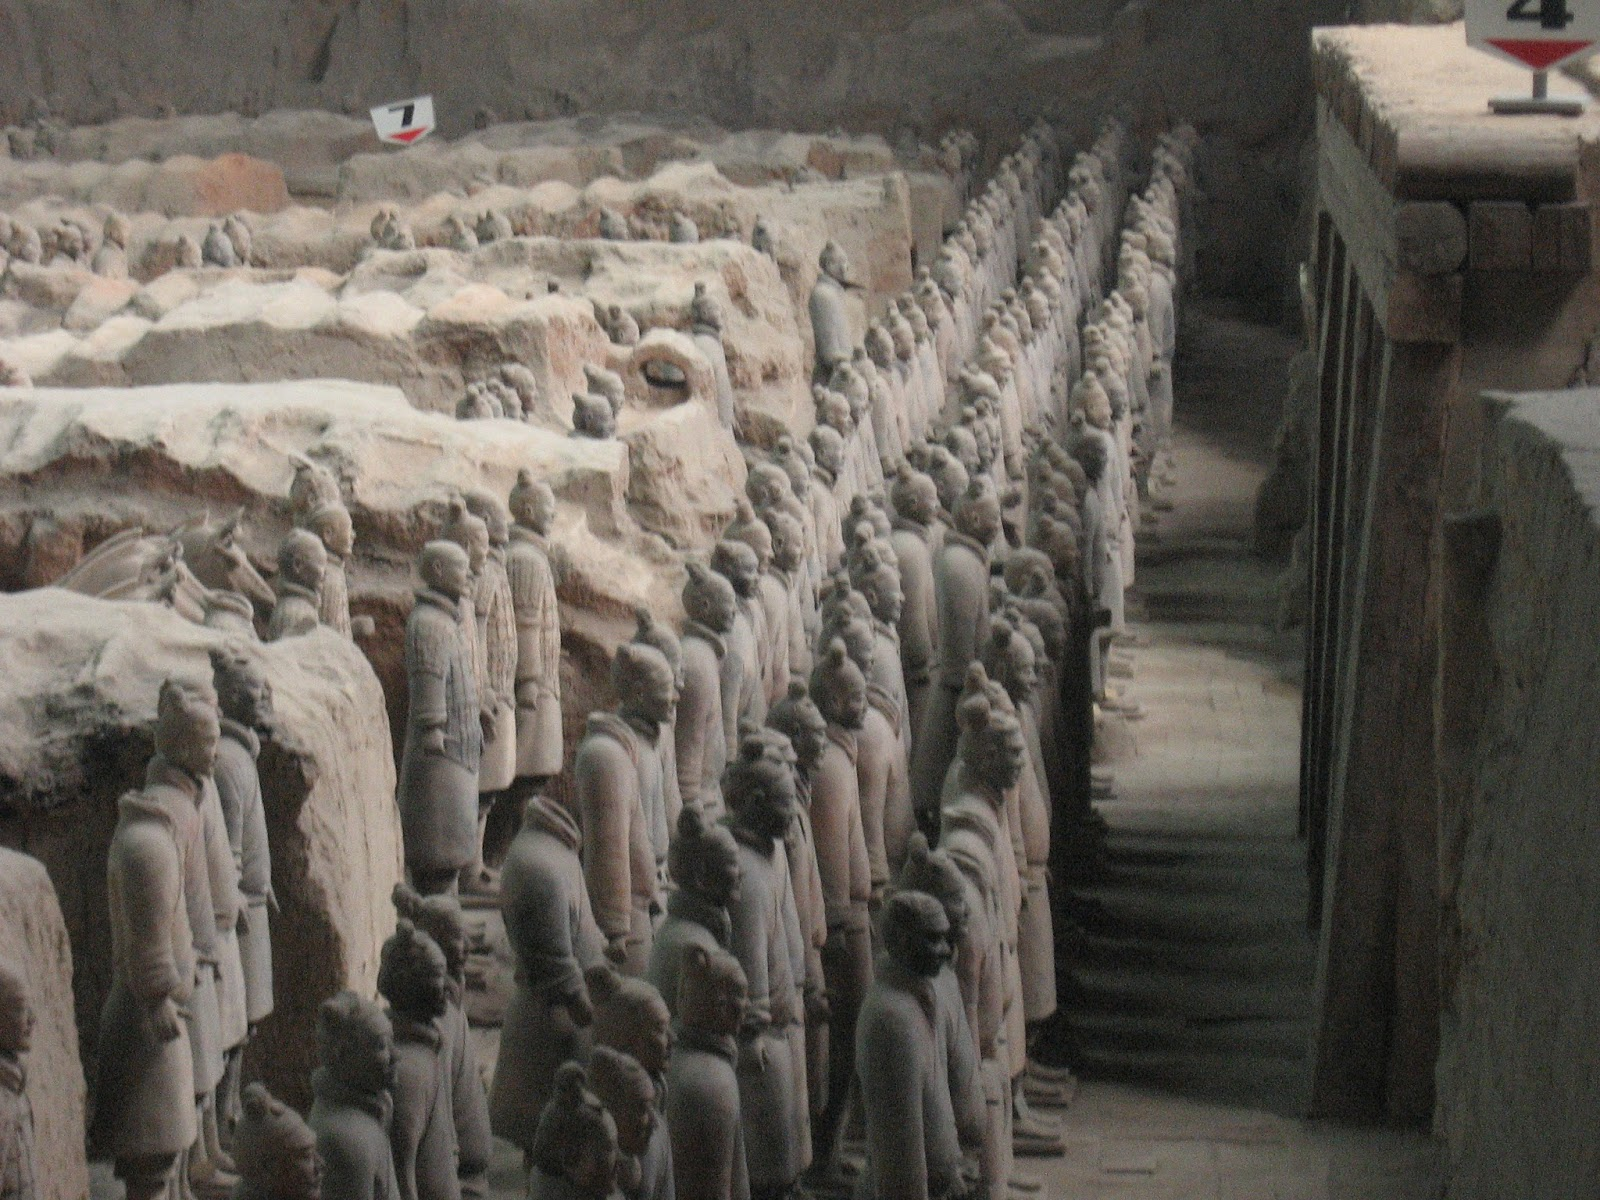 These Are The 25 Best Museums In The World - Terracotta Army